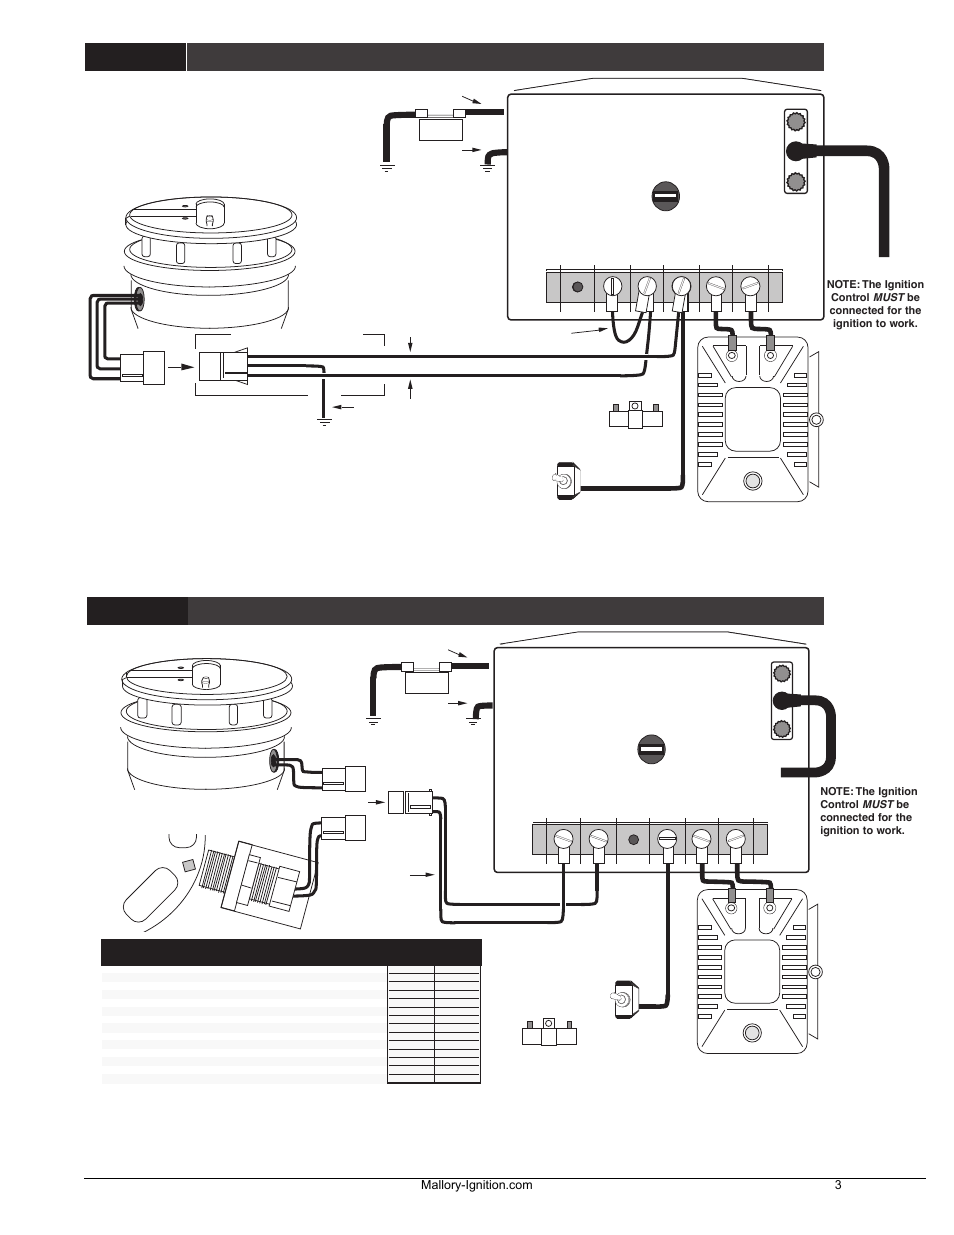 Magneto Wiring Diagram For Ignition Library 12v Coil Mallory 29440 Dist